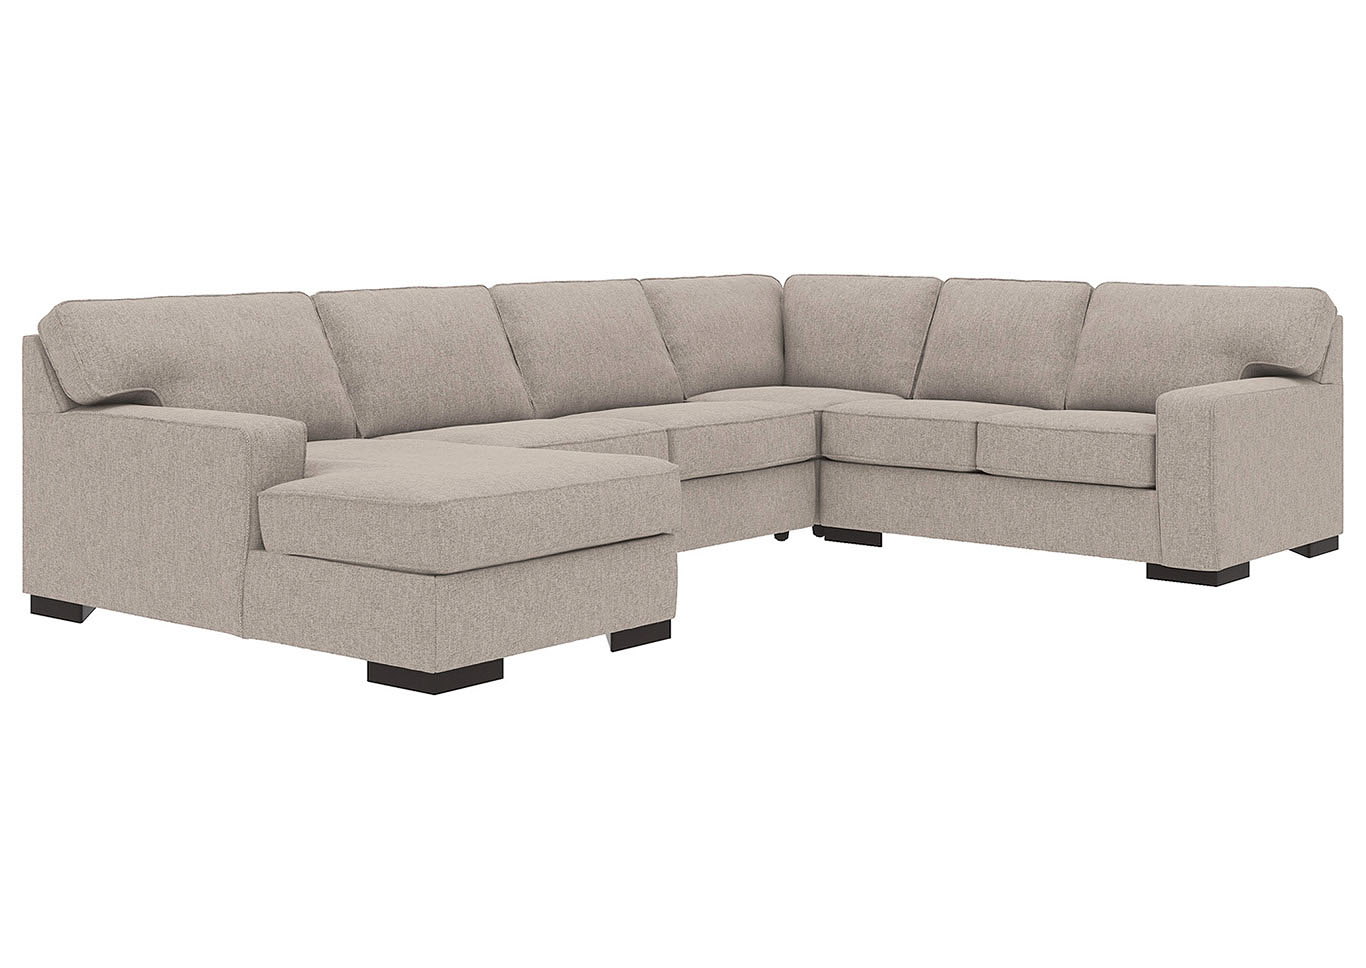 Ashlor Nuvella Slate LAF 4 Piece Chaise Sectional,Ashley